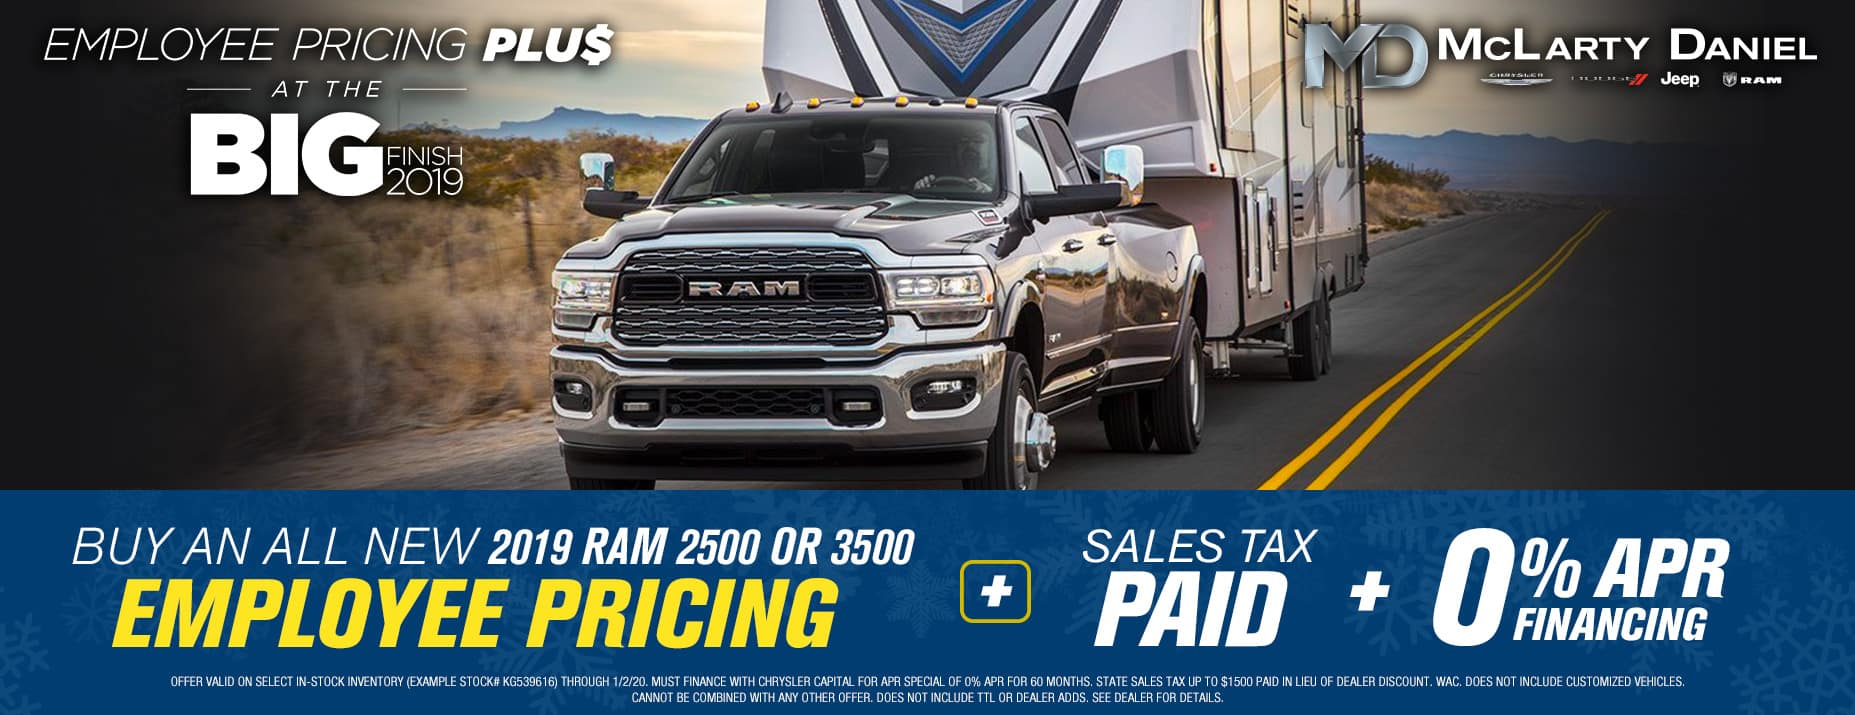 EMPLOYEE PRICING FOR EVERYONE! BUY A NEW RAM 2500 or 3500 FOR EMPLOYEE PRICING -PLUS- 0% APR -PLUS- SALES TAX PAID!